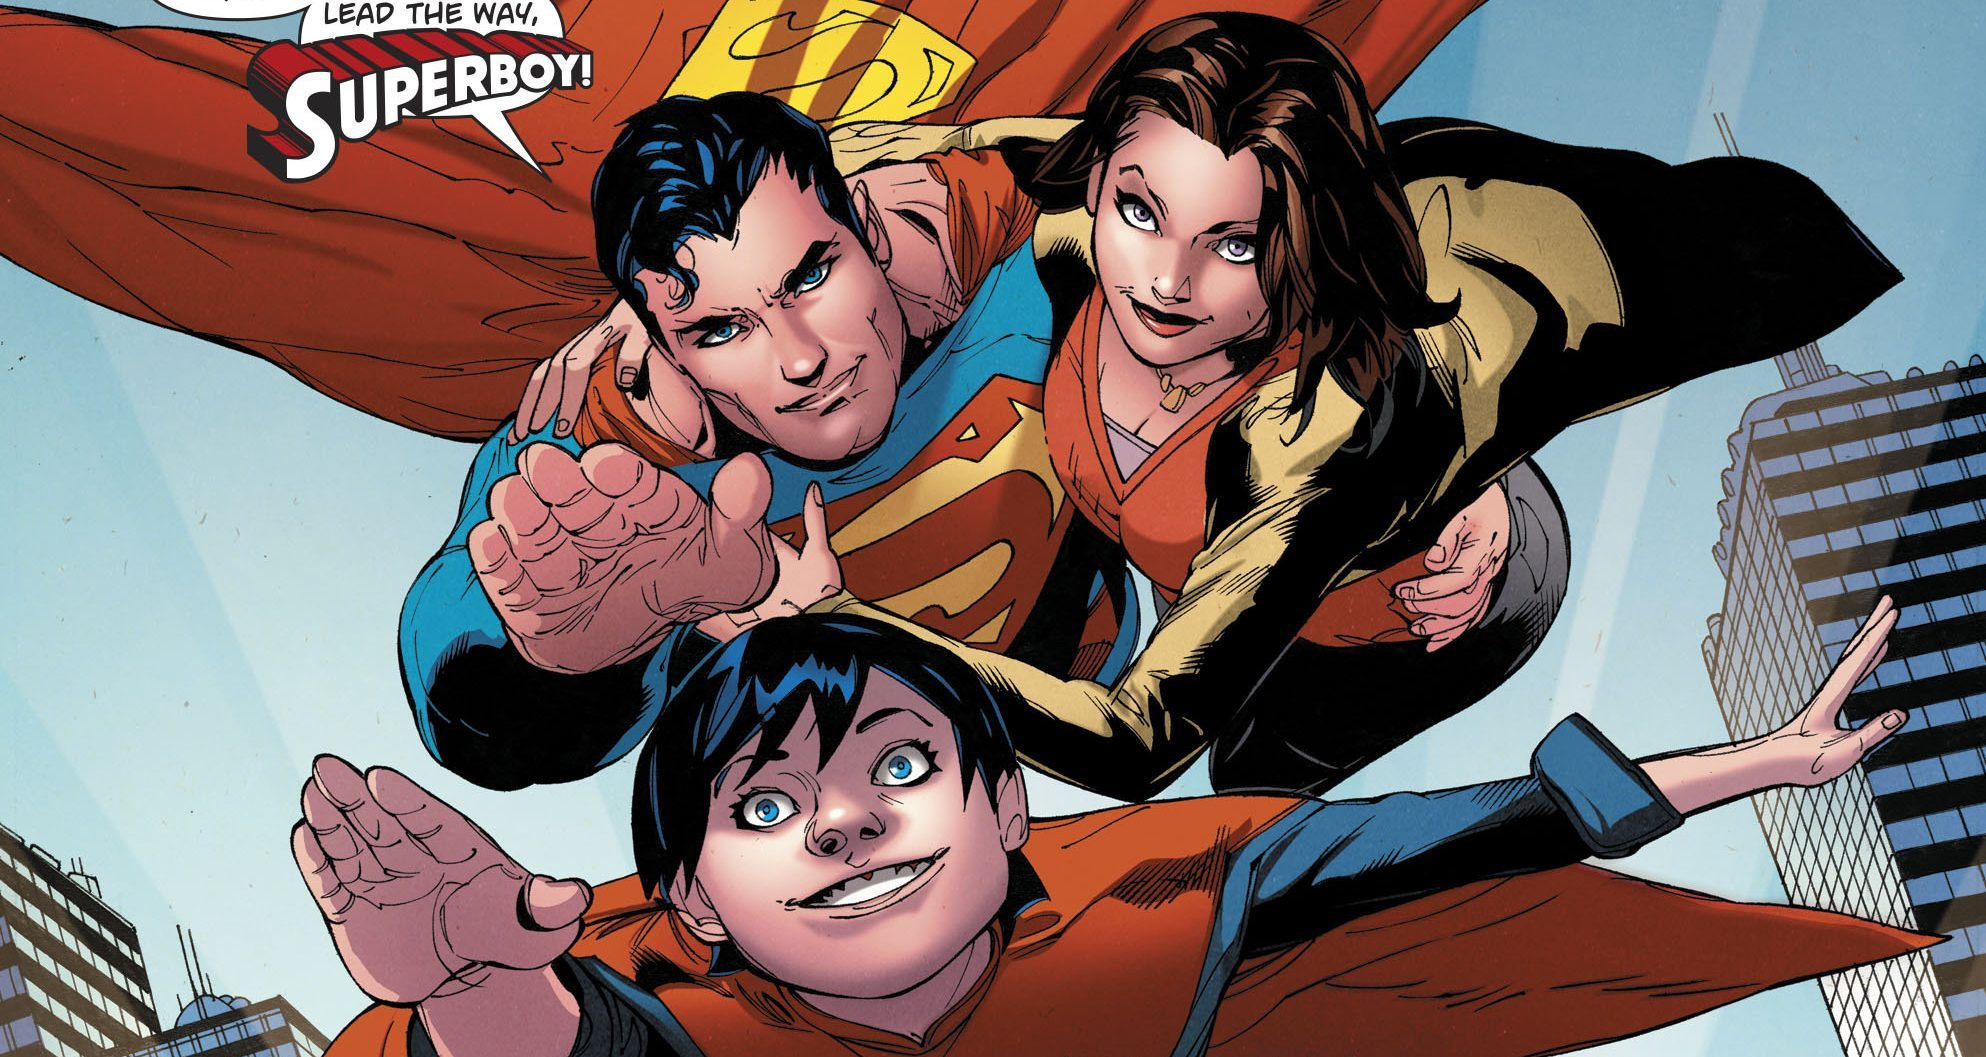 Les comics que vous lisez en ce moment - Page 19 Action-Comics-976-Superman-Reborn-Part-4-DC-Comics-Rebirth-Spoilers-0-banner-e1490176037826